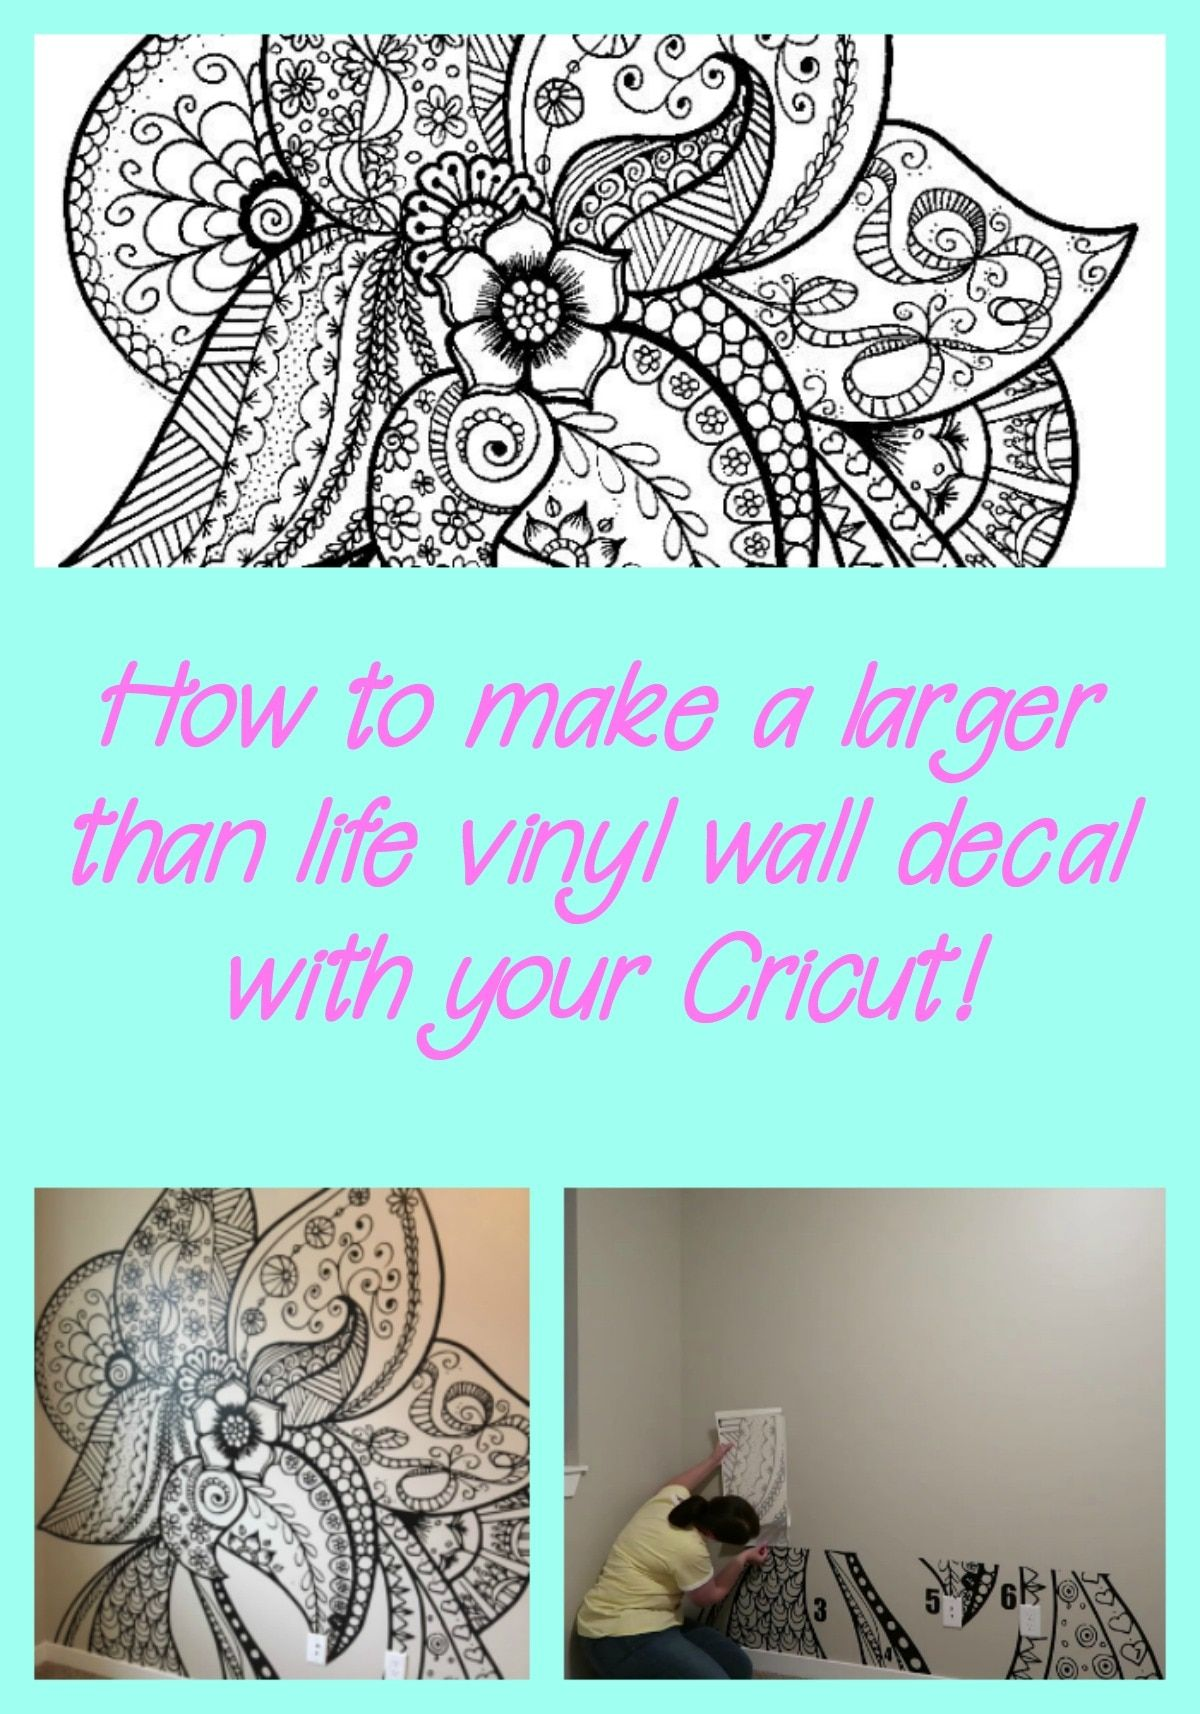 How To Create A Large Vinyl Wall Decal With Your Cricut Diy Wall Decals Vinyl Wall Decals Cricut Projects Vinyl